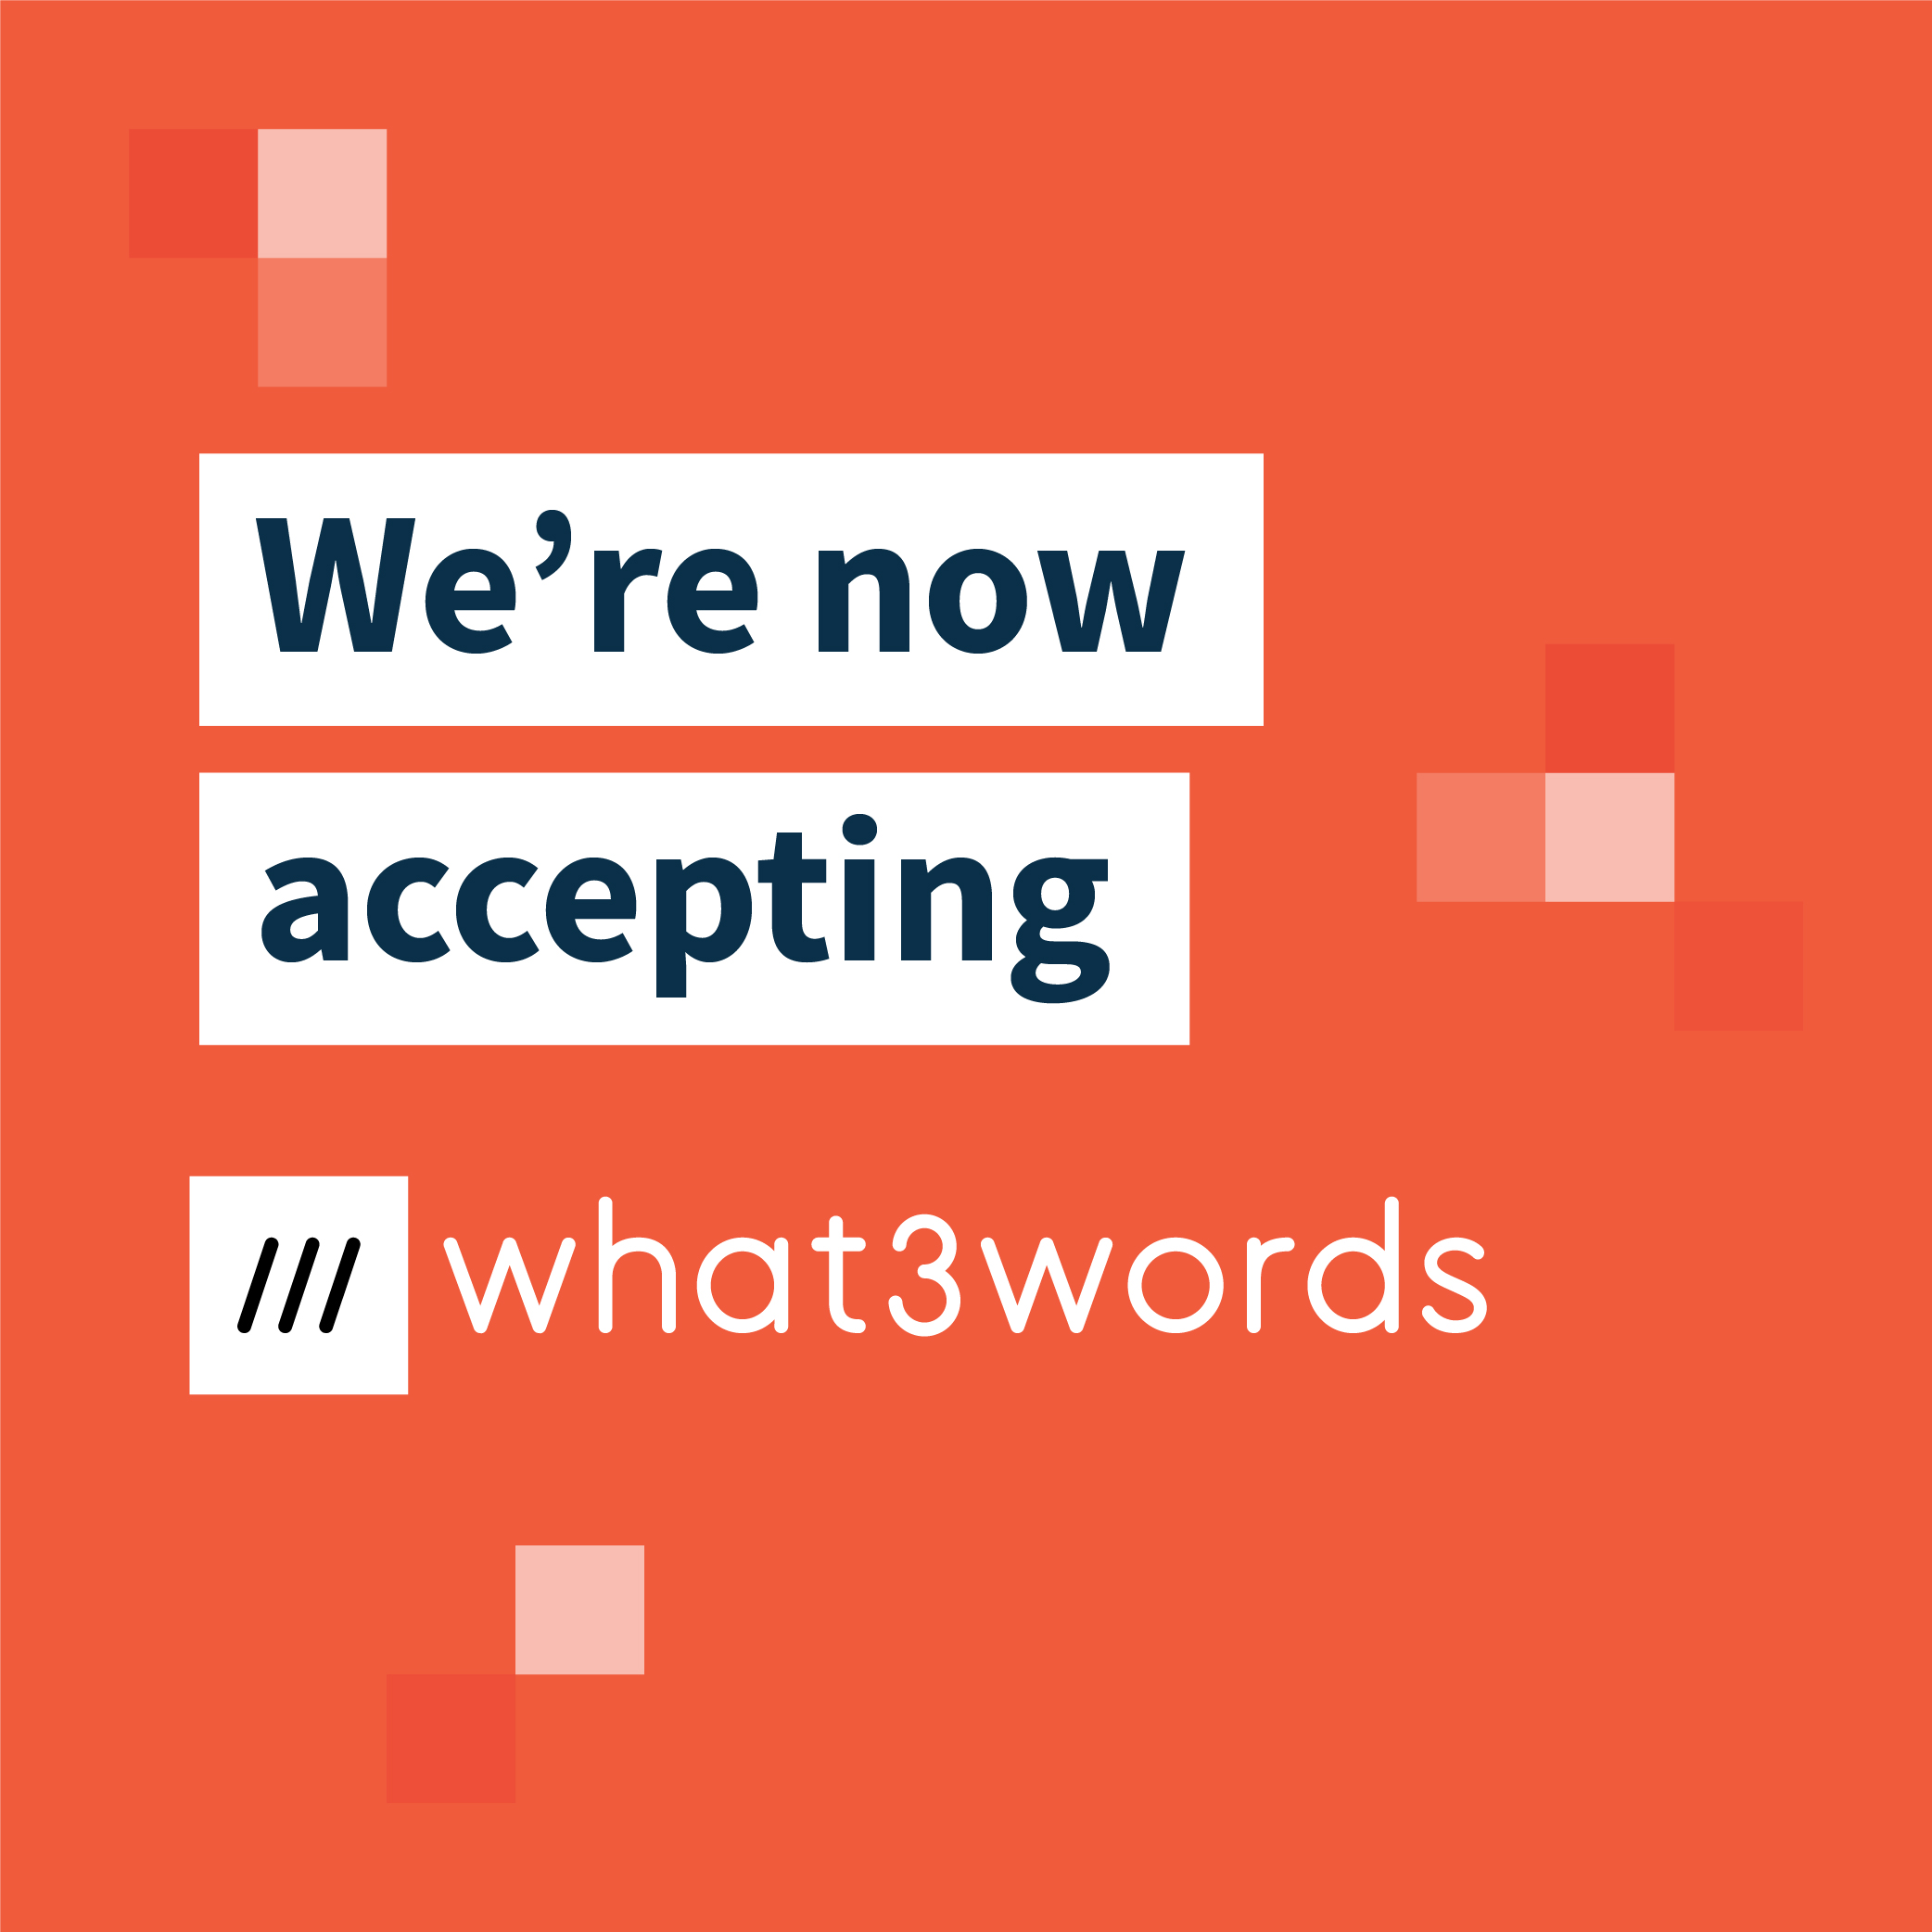 we're now accepting what 3 words badge with red background